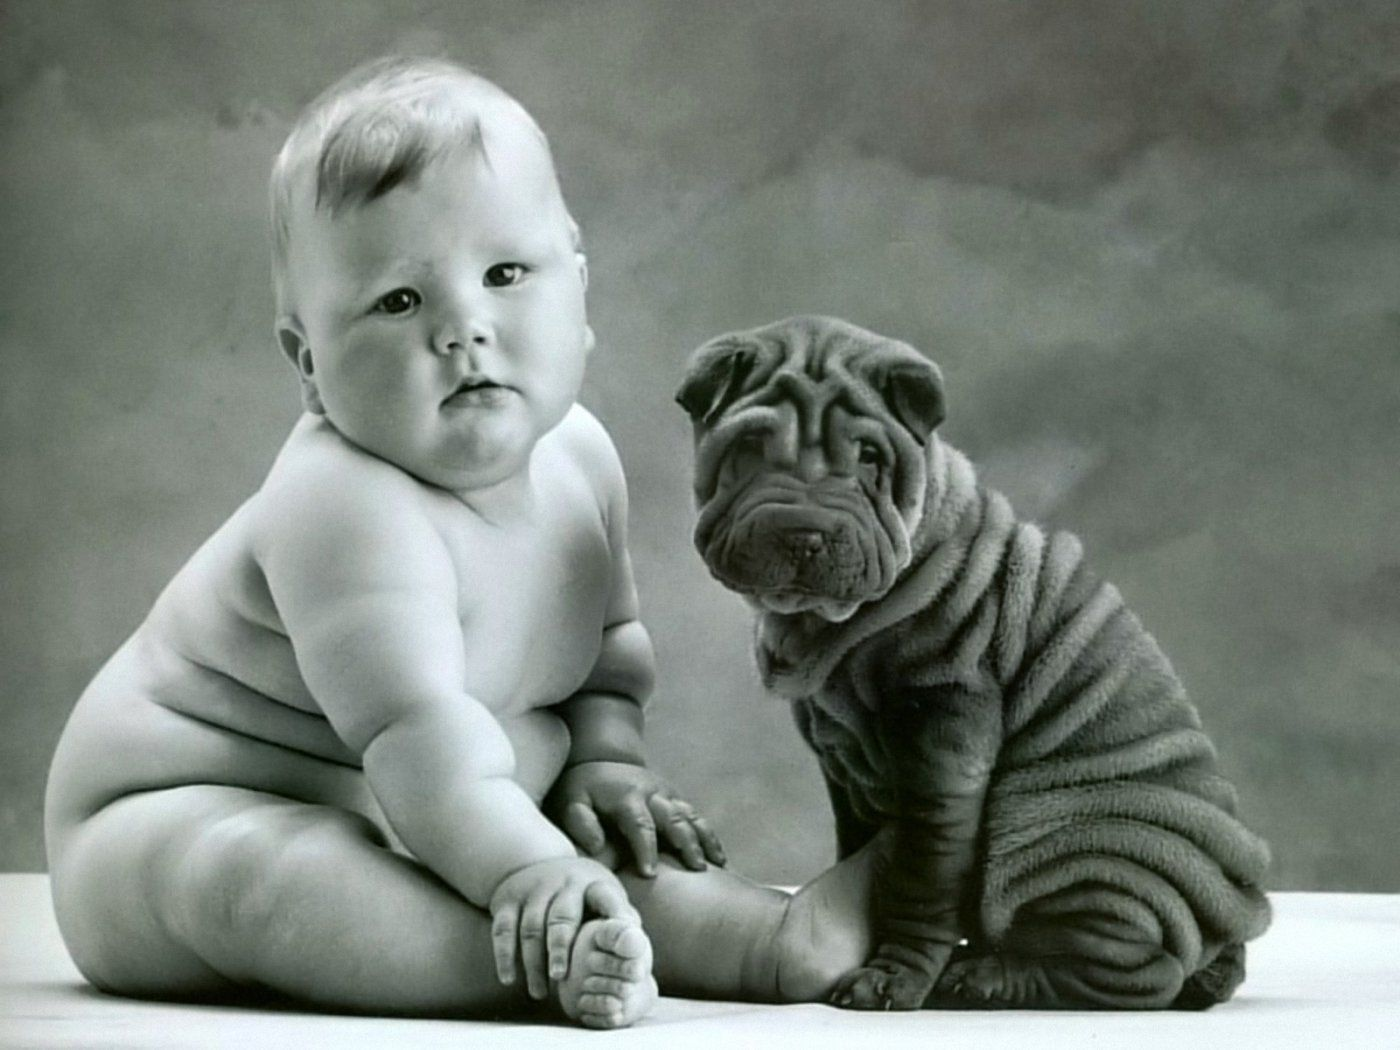 baby-and-puppy_90281-1400x1050